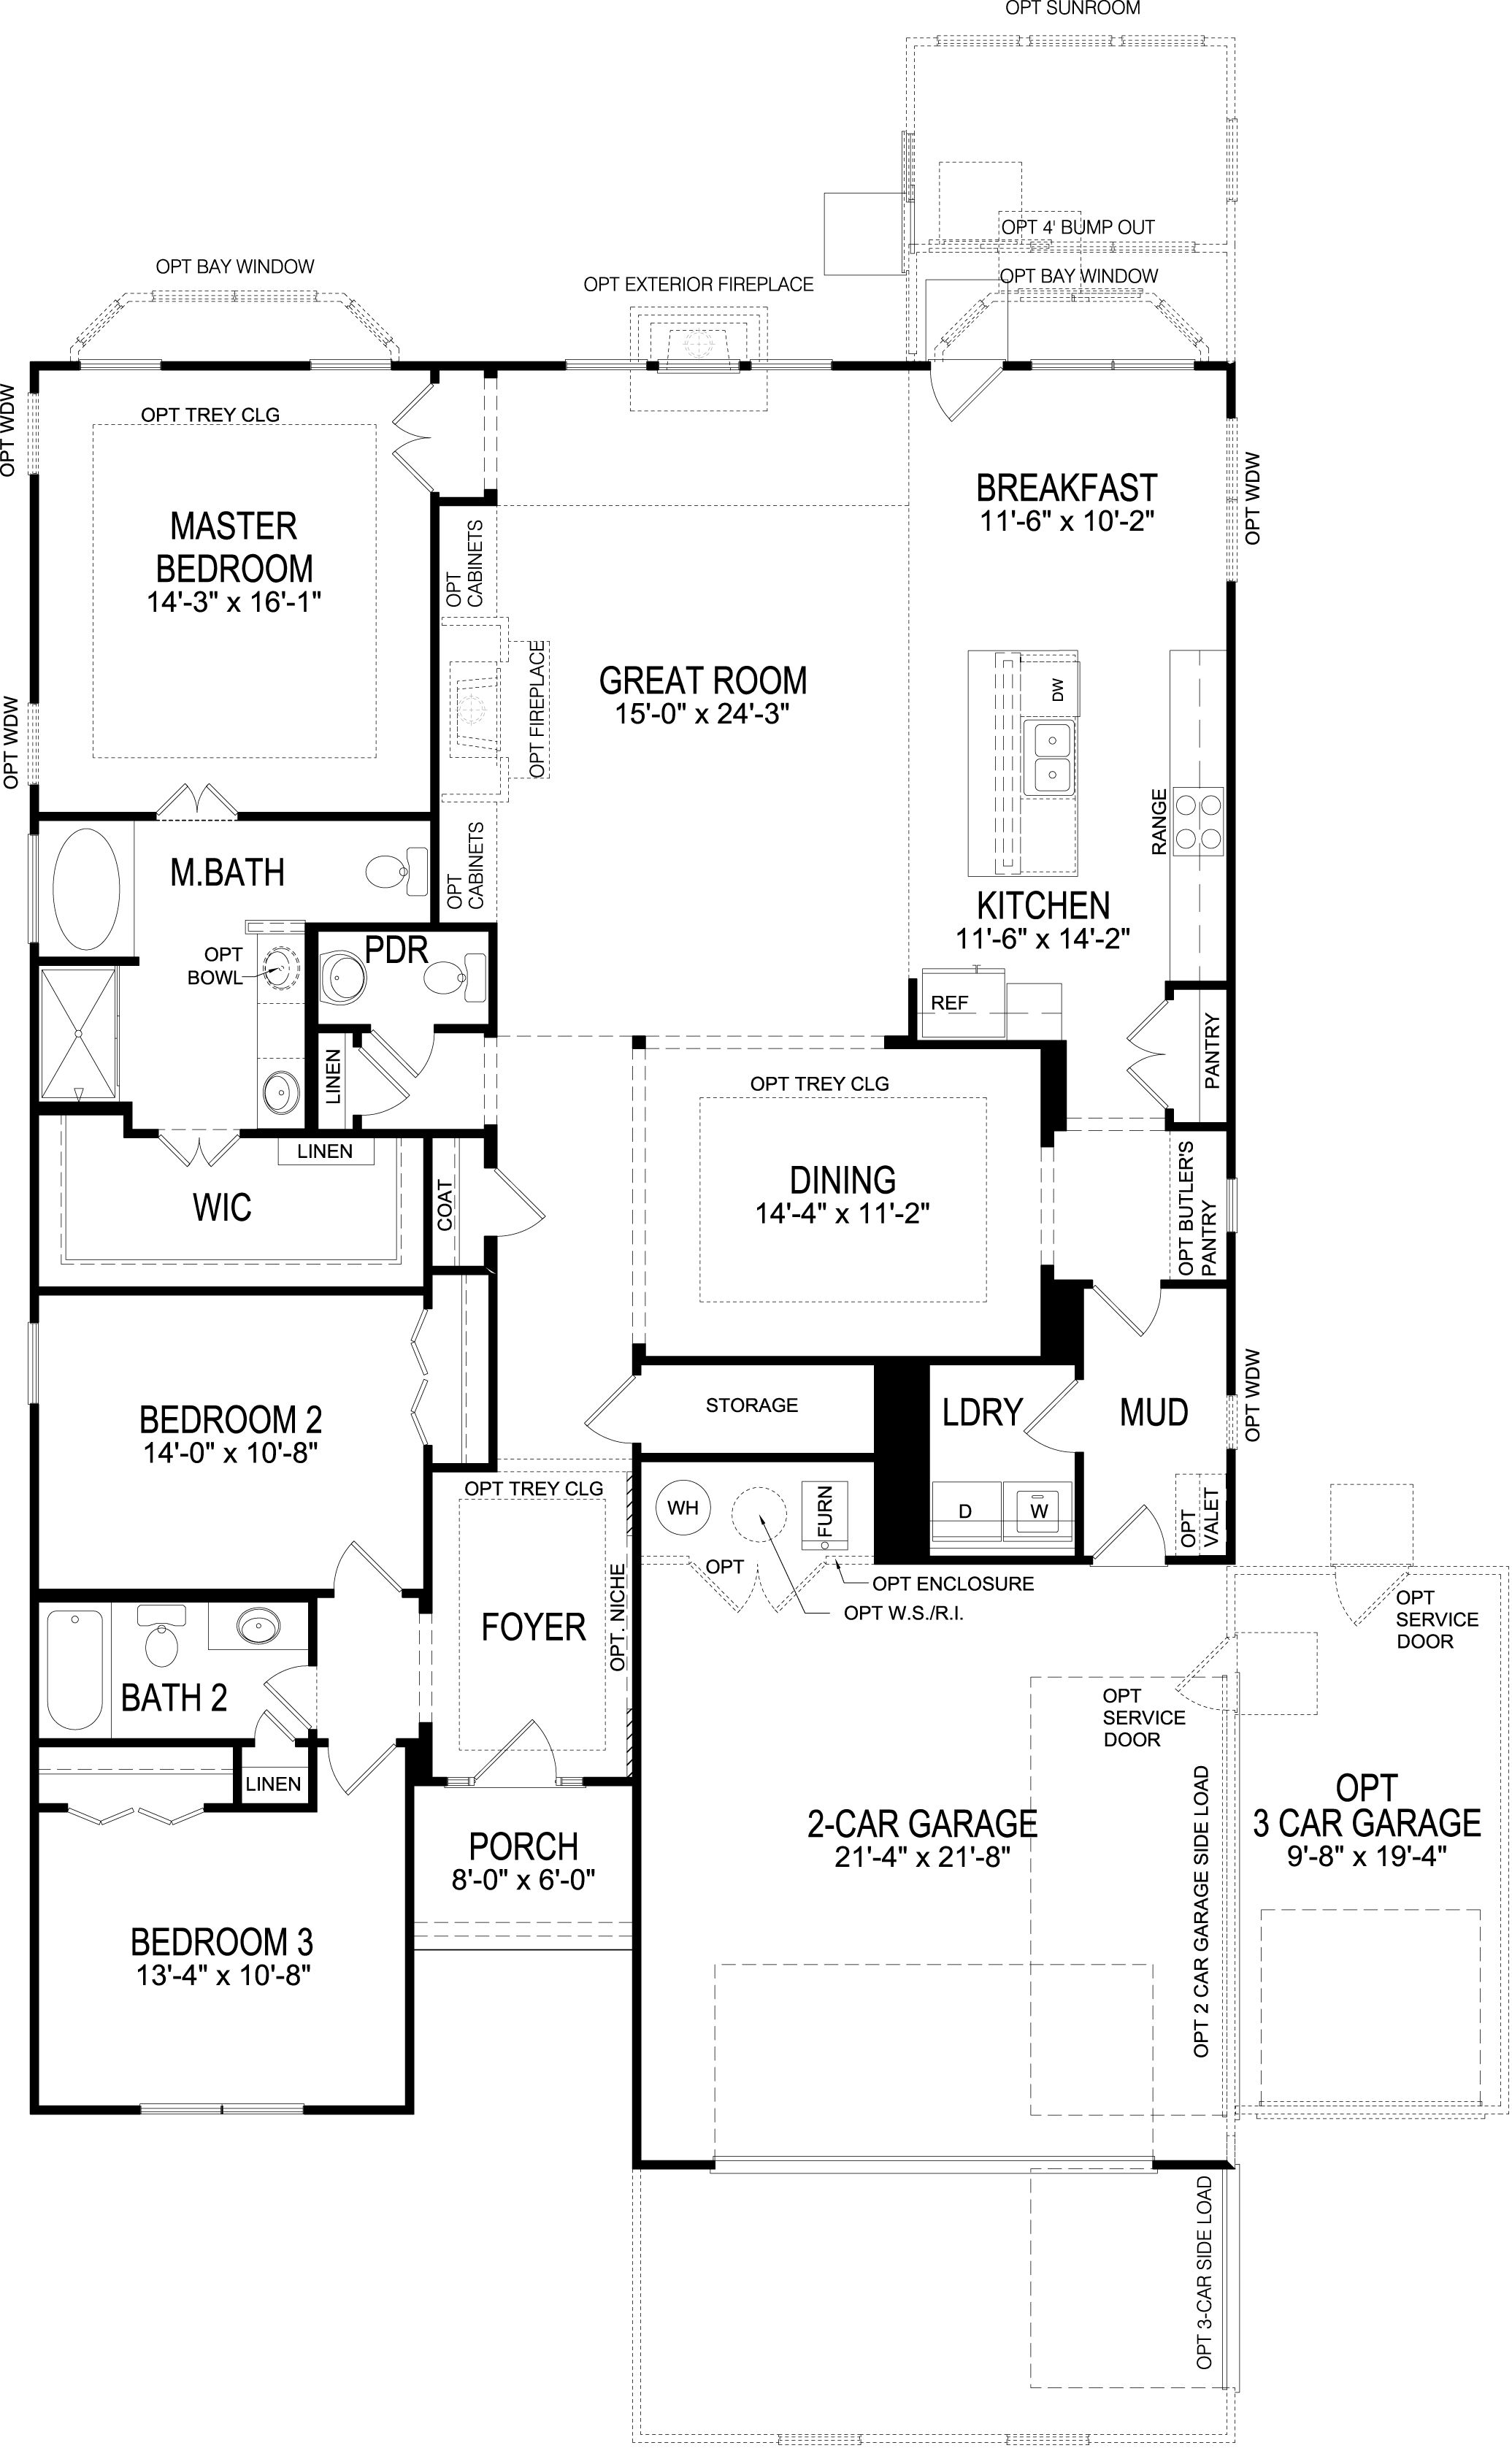 Single story floorplan. Great clustering of bedrooms for